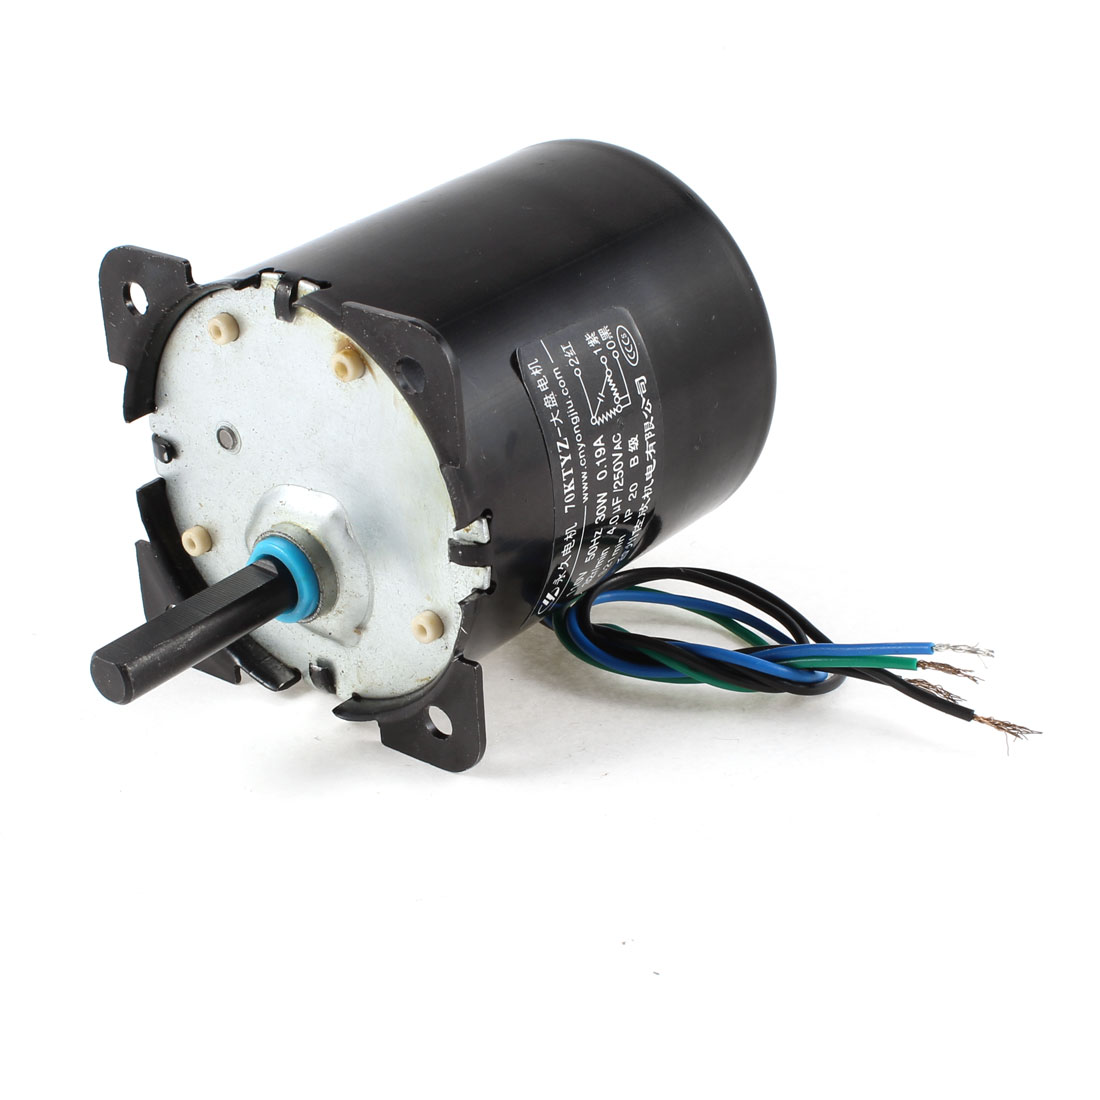 Uxcell(R) AC 110V 0.19A 30W 32r/min Speed 8mm Shaft Diameter Synchronous Gear Motor